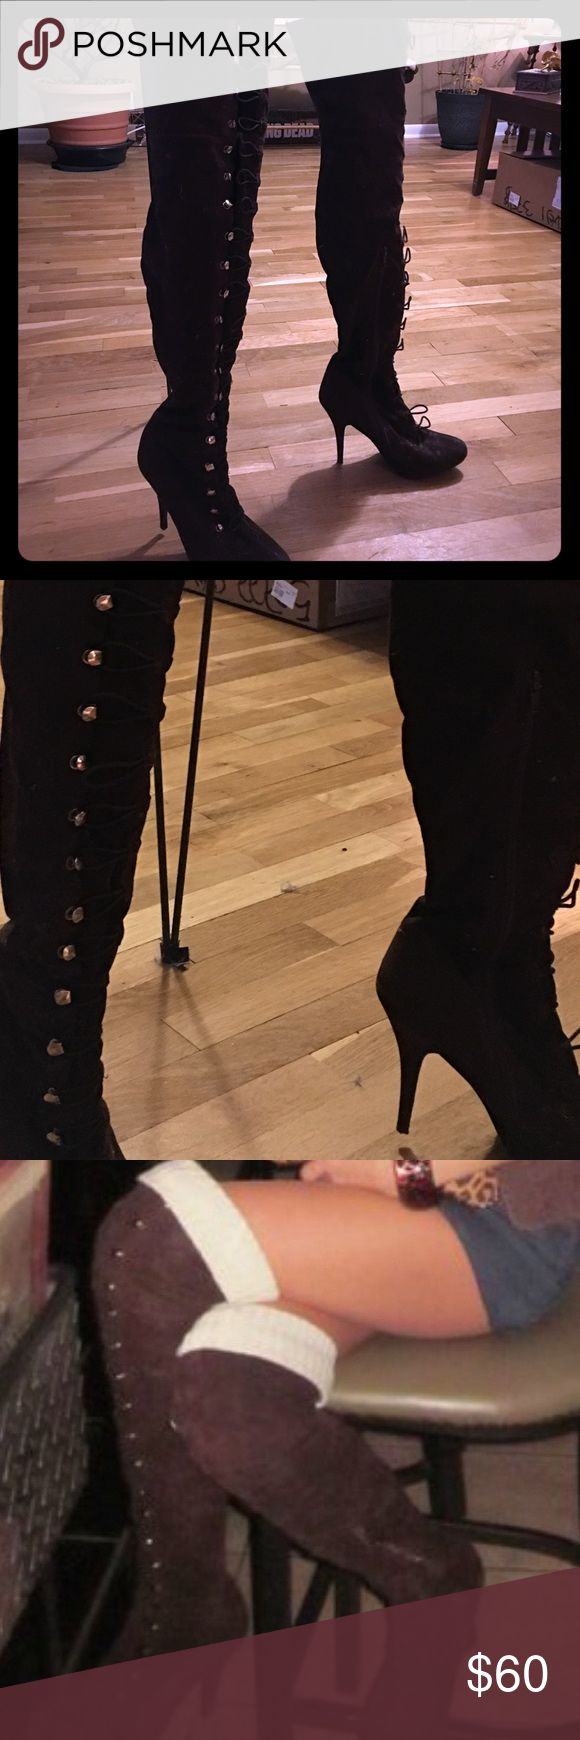 """👢 Thigh High Boots •EXCELLENT CONDITION• WORN TWICE• NO SCUFFS OR FLAWS• OFFERS WELCOME• Sexy brown suede thigh high boots, stretch and clasp to fit all leg sizes. I called them my """"pretty woman"""" boots 💋 Shoes Over the Knee Boots"""